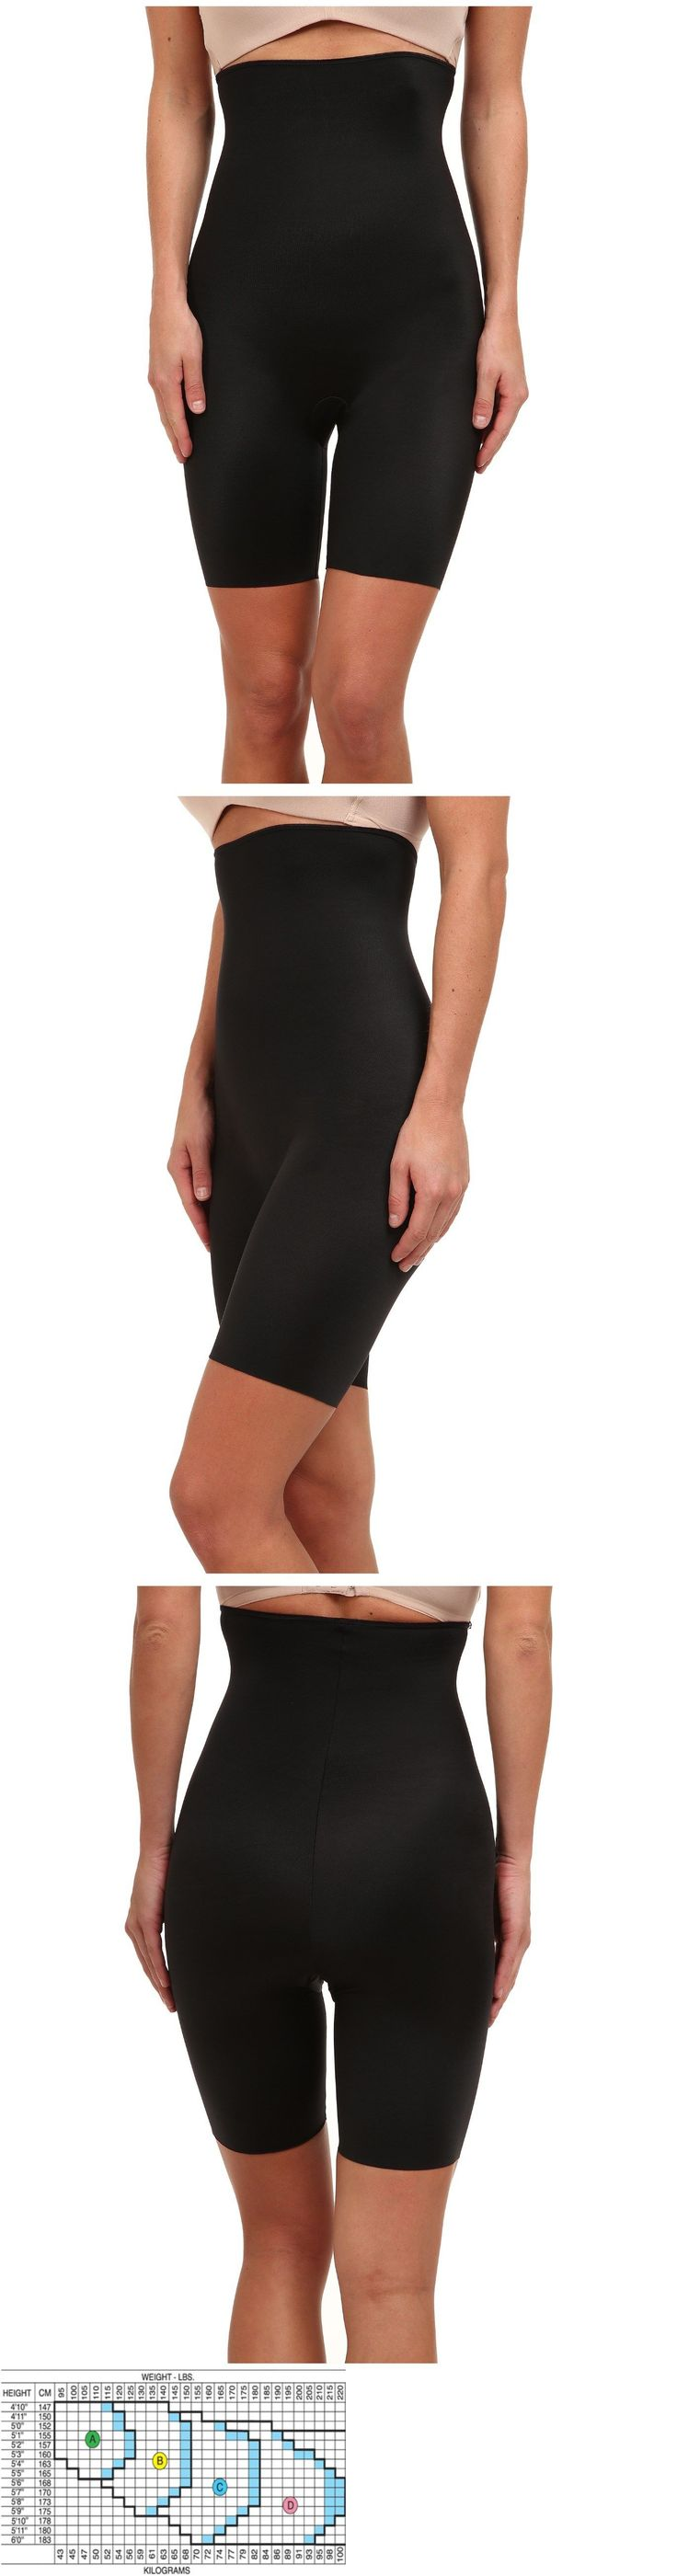 Women Shapewear: New Spanx $72 Slimplicity High Waisted Mid Thigh Body Shaper Black Plus 1X BUY IT NOW ONLY: $37.99